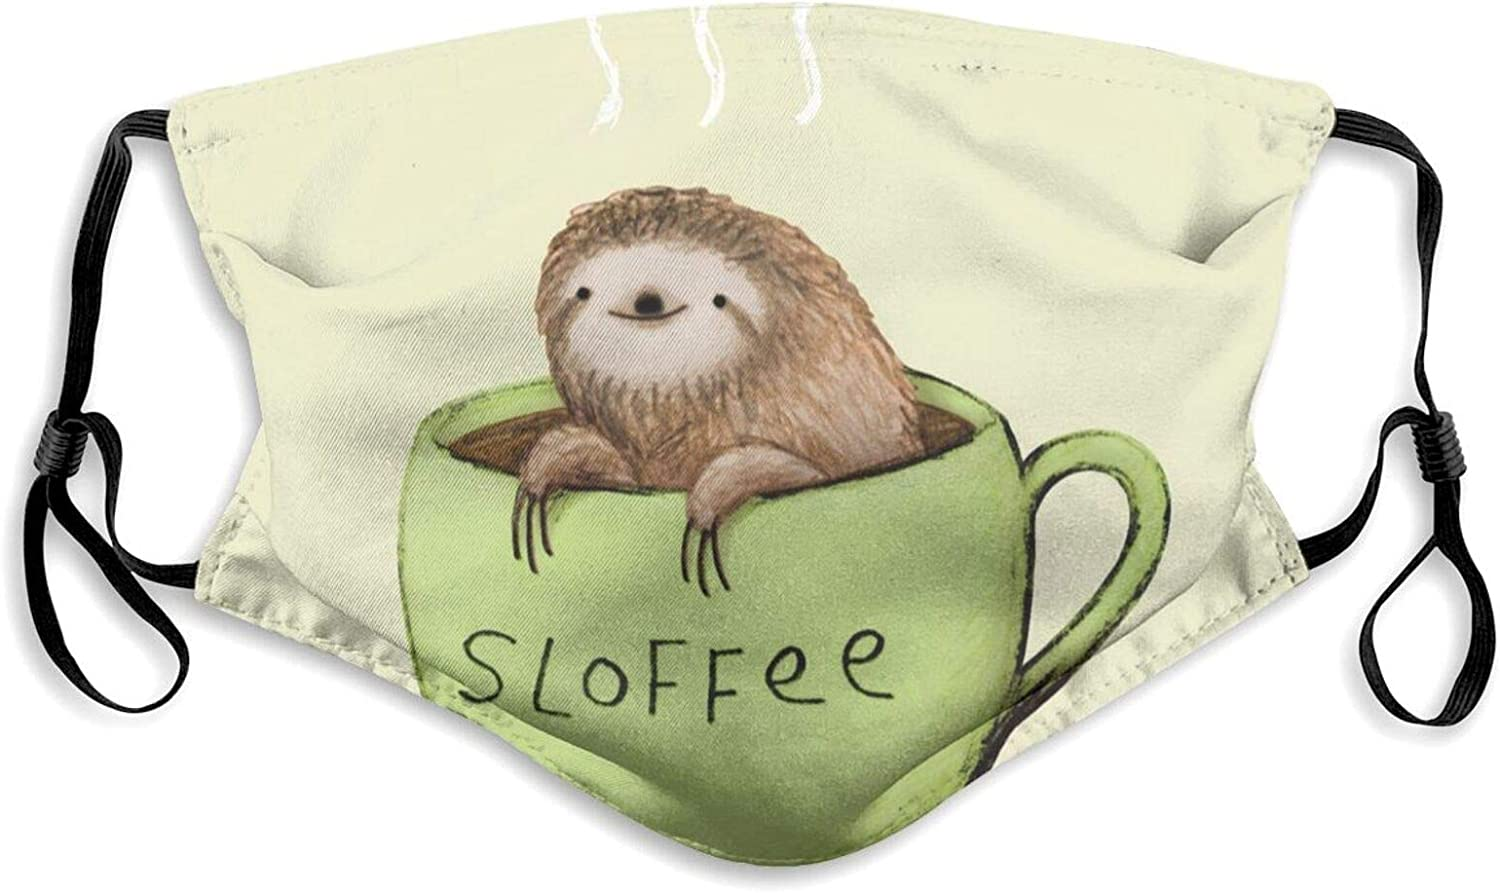 Washable Sloth Face Masks with Filter, Adjustable and Reusable Balaclavas for Men and Women